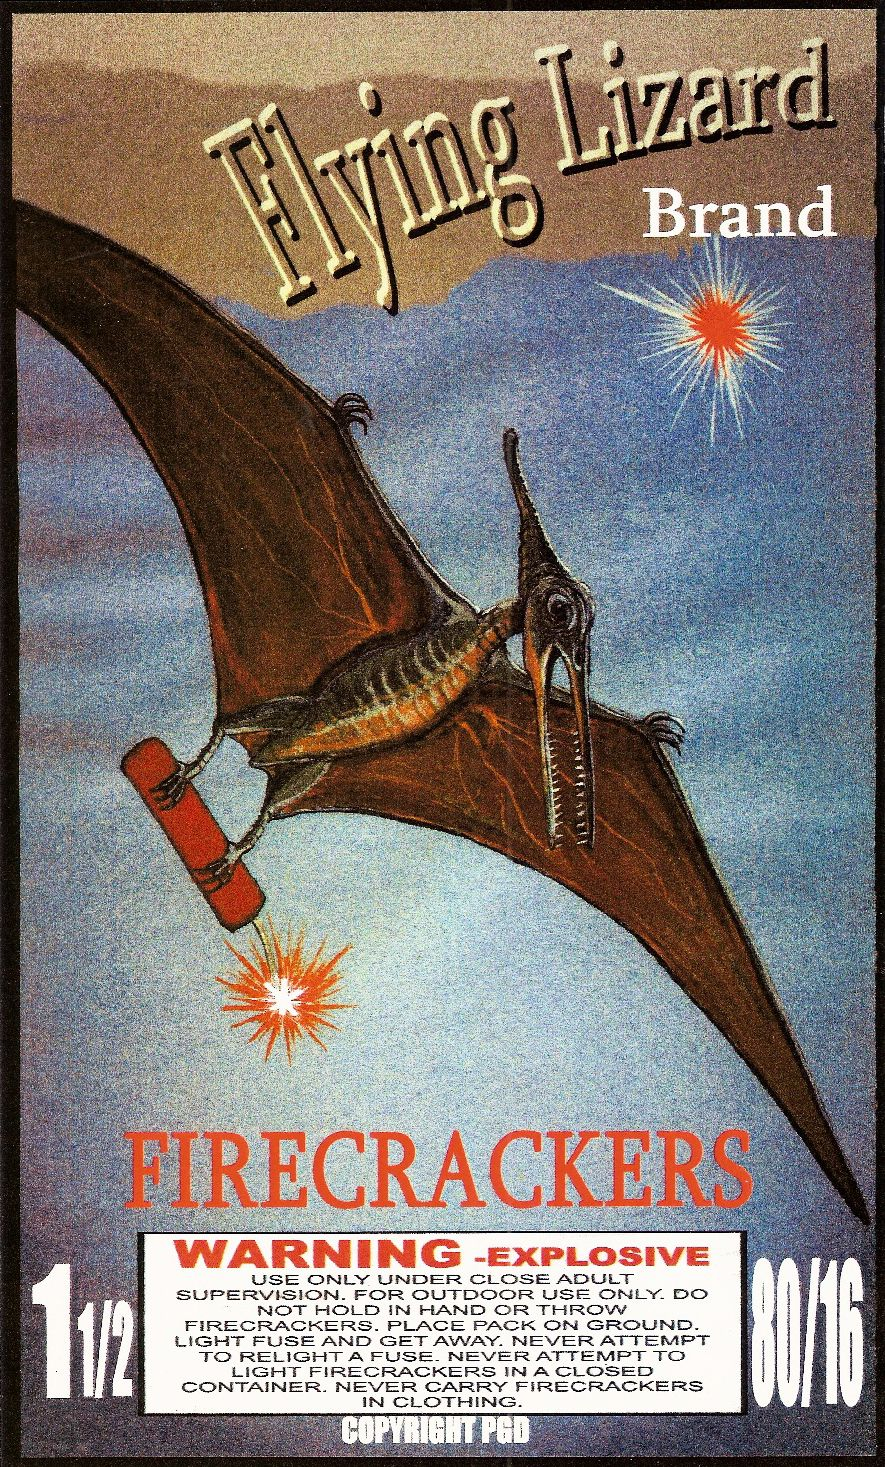 Flying #Lizard Firecracker Label